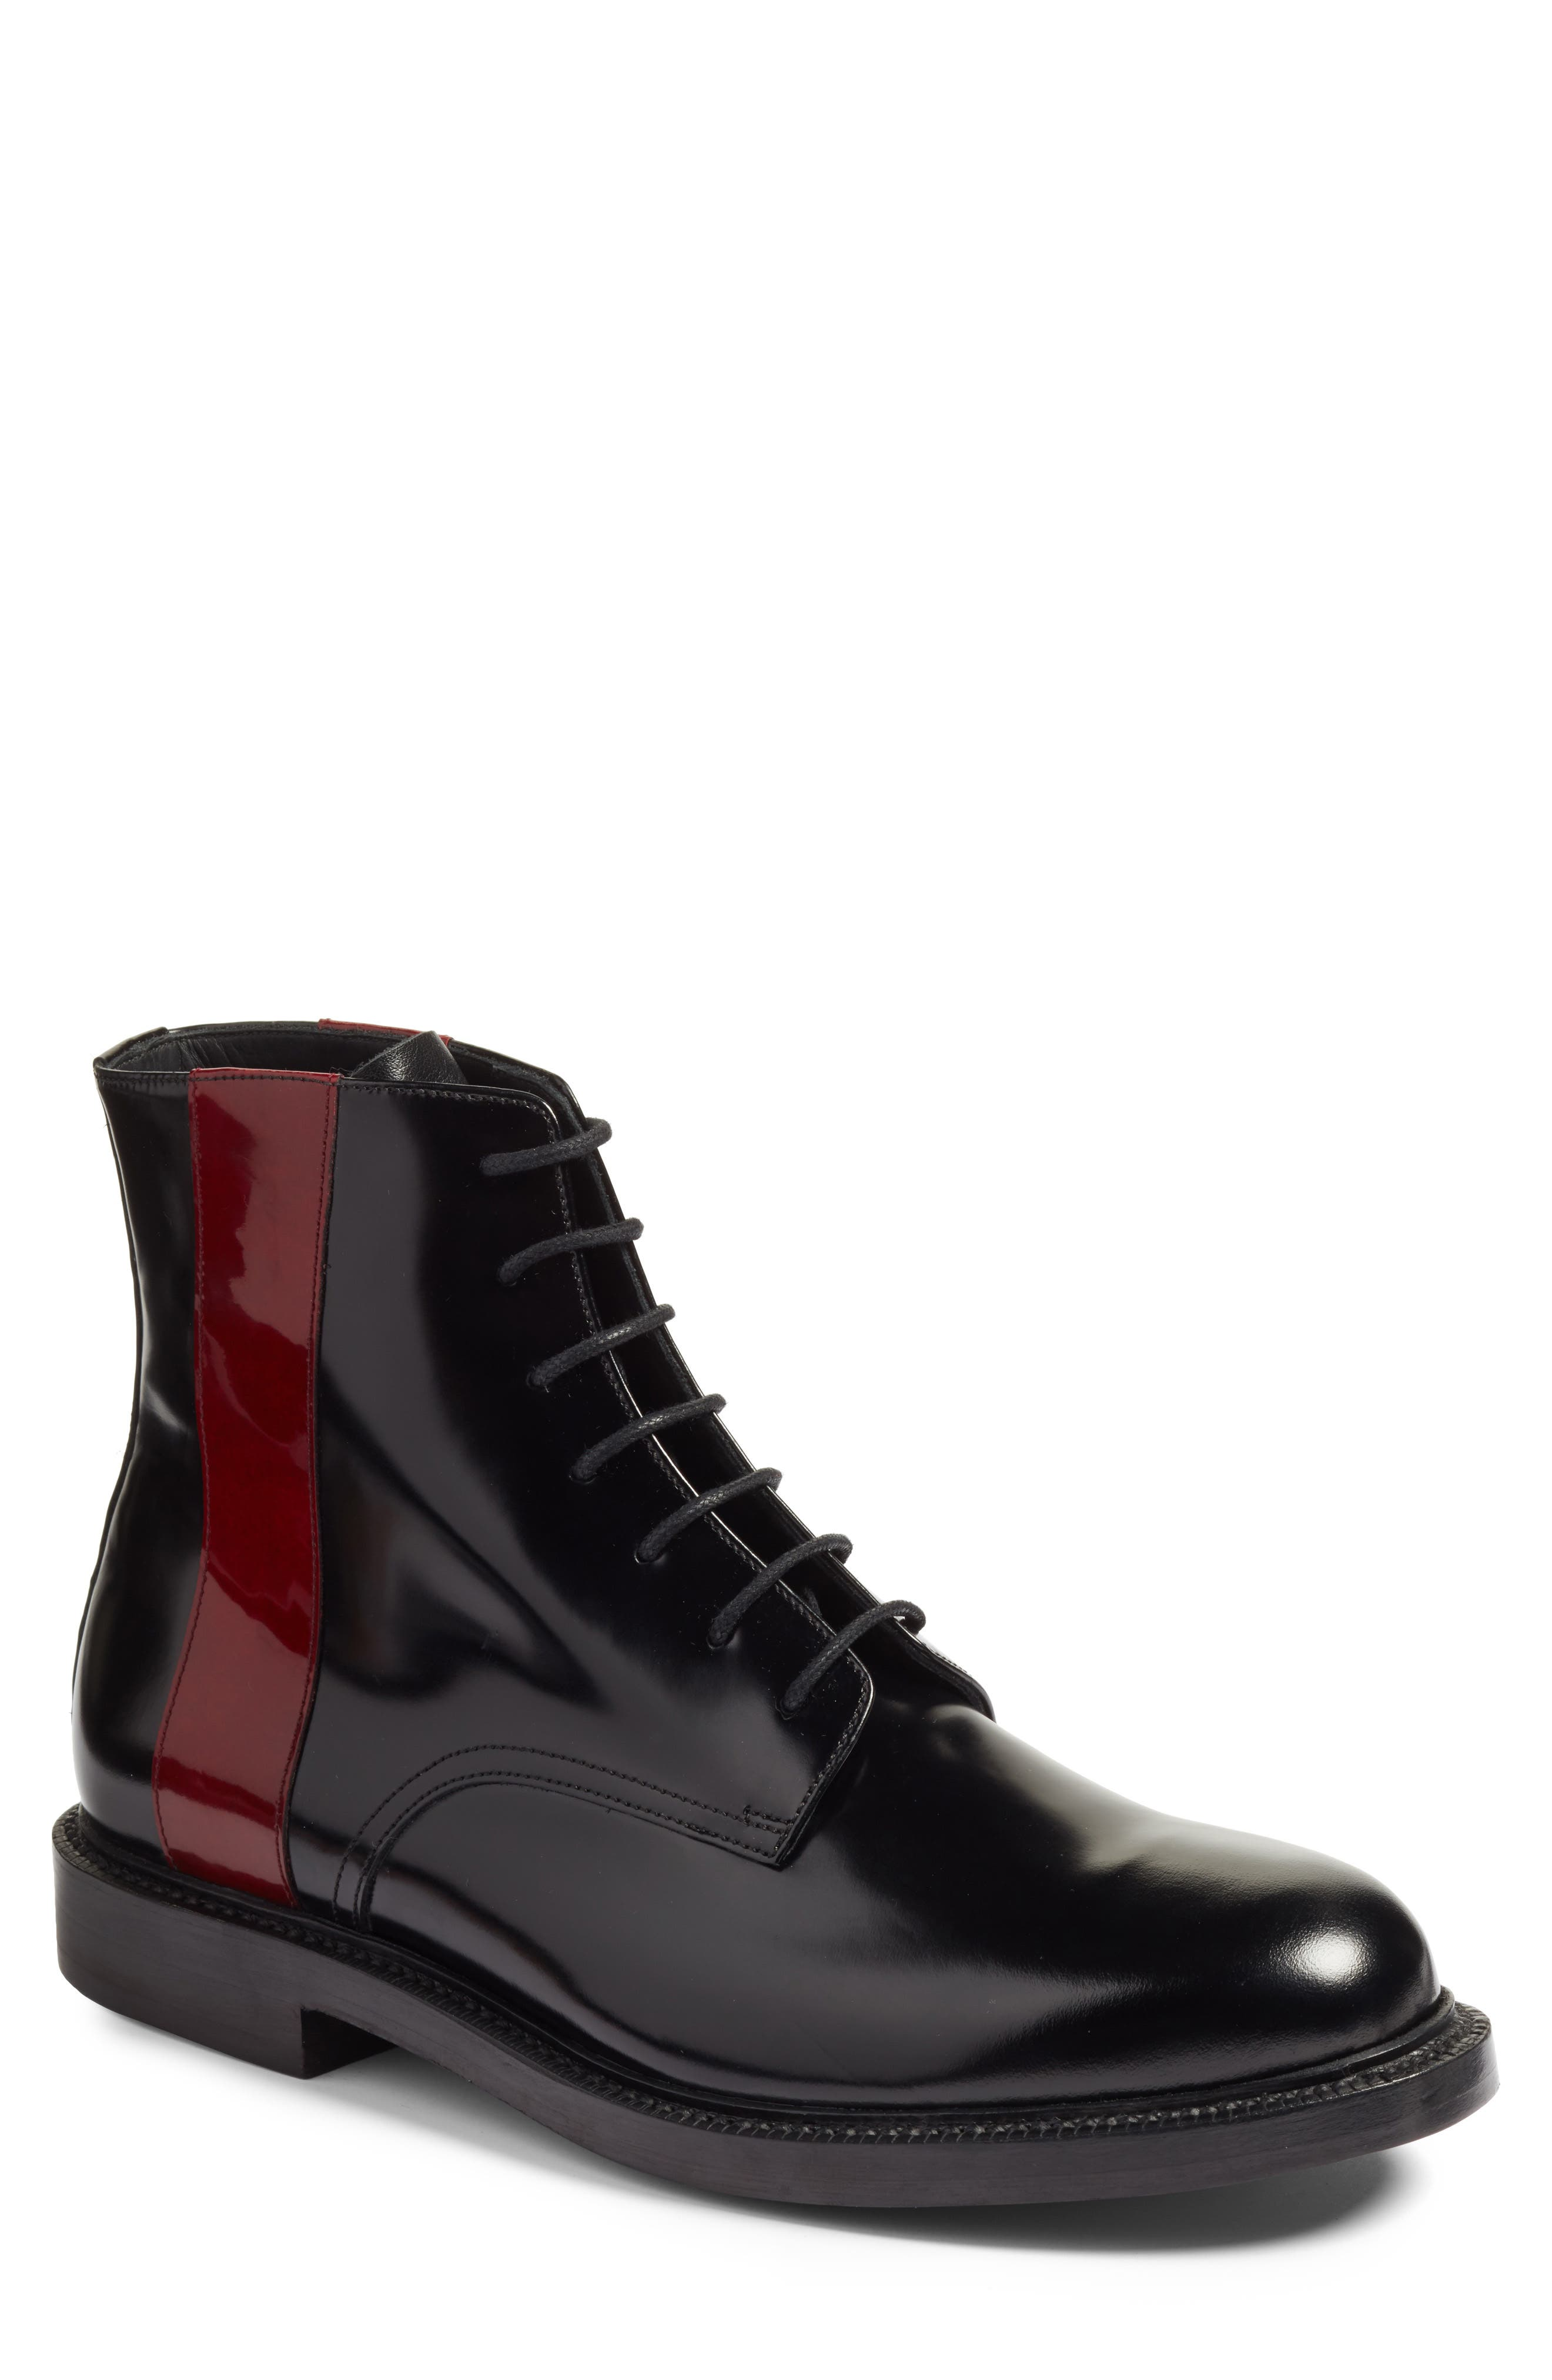 Alternate Image 1 Selected - CALVIN KLEIN 205W39NYC Hova Boot (Men)